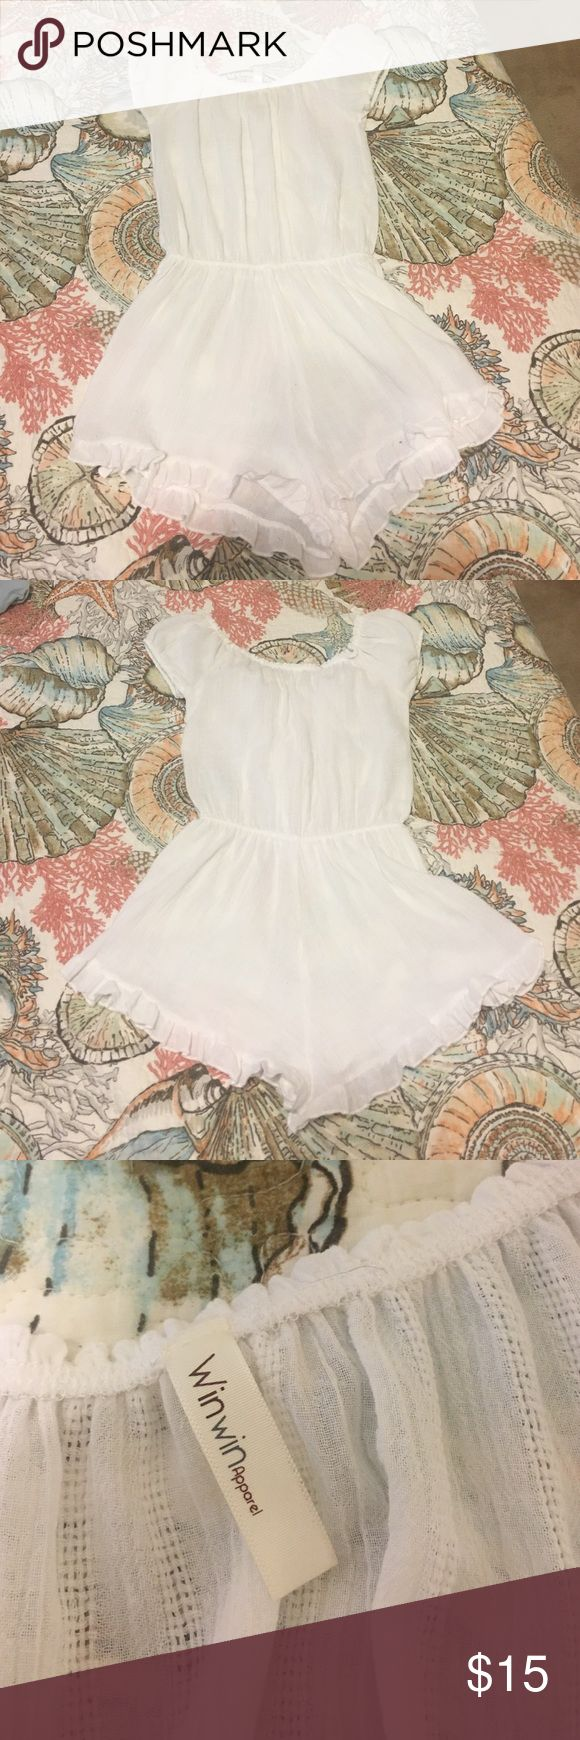 White bathing suit cover up romper! Super cute!! Brand new without tags! It is very light material, which makes it slightly see-through. Perfect for over a bathing suit! Swim Coverups